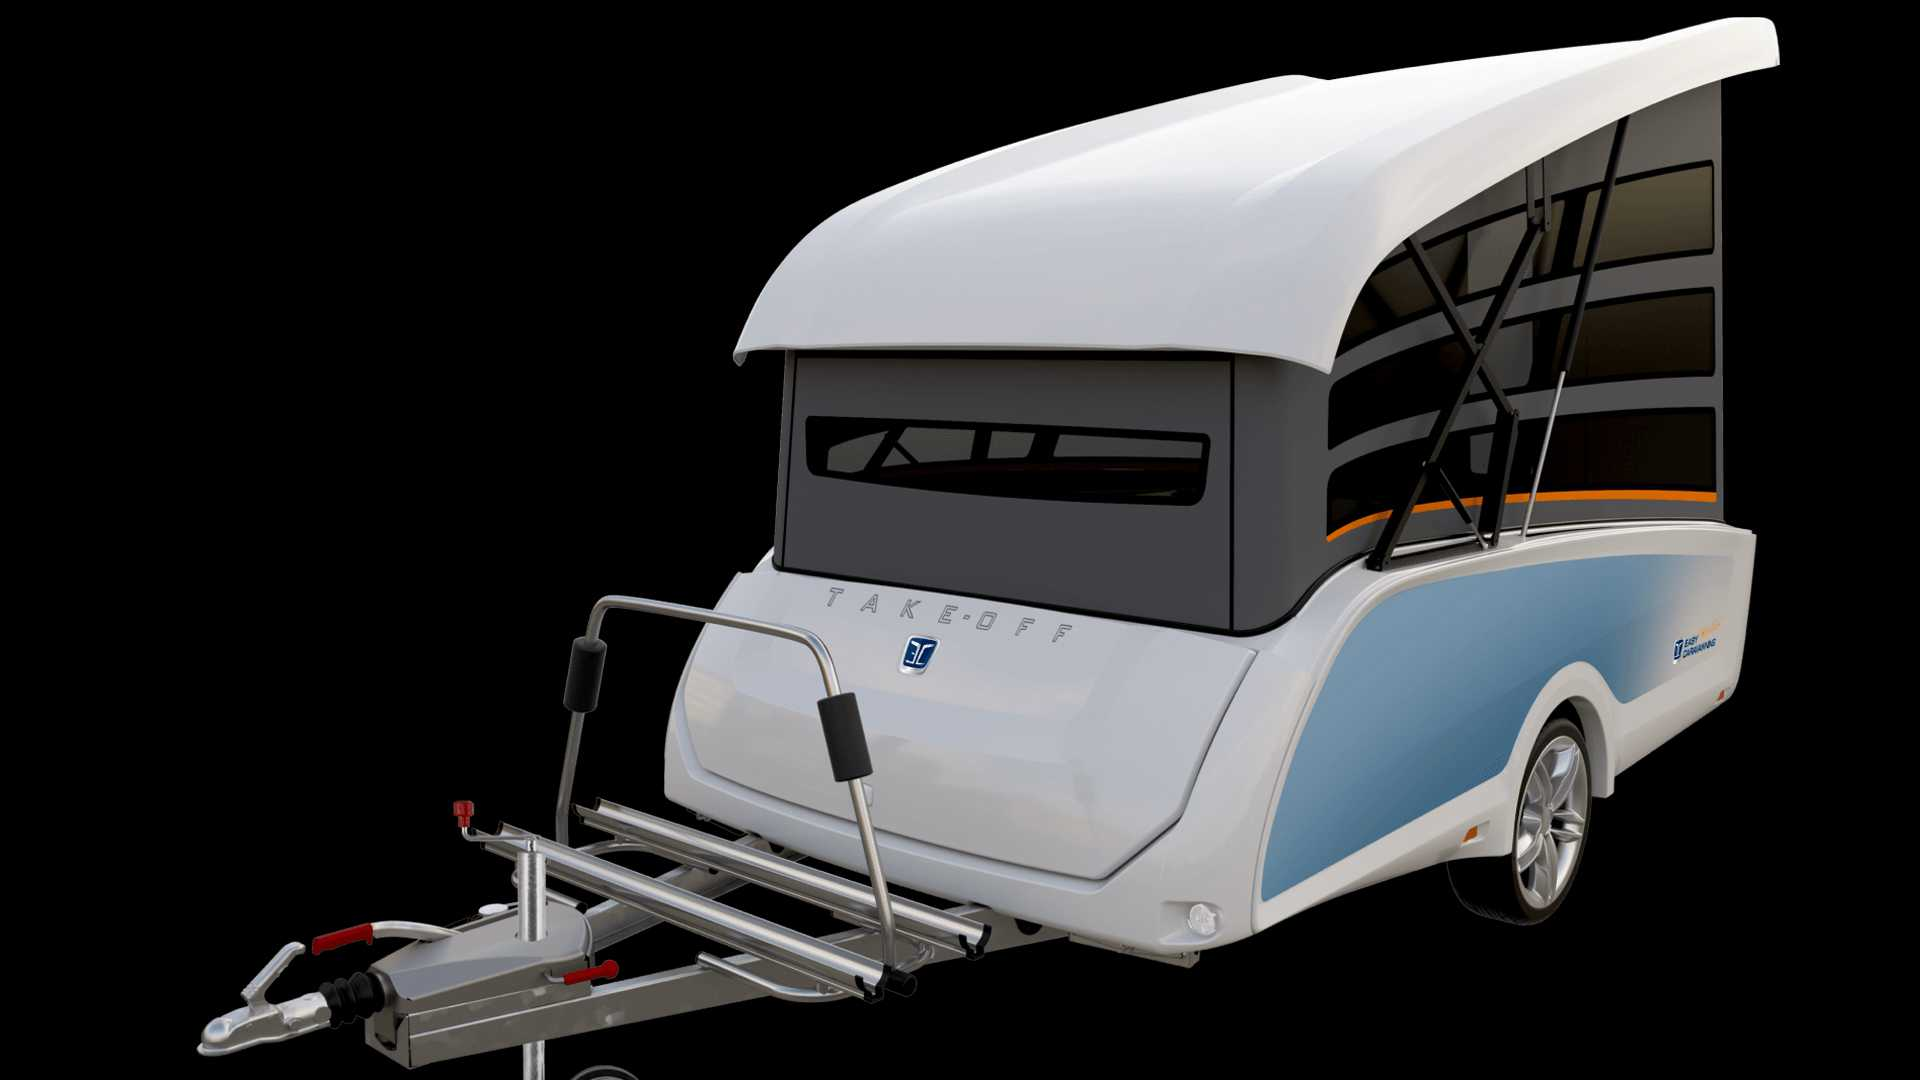 This futuristic pop-top camper can be towed by nearly anything